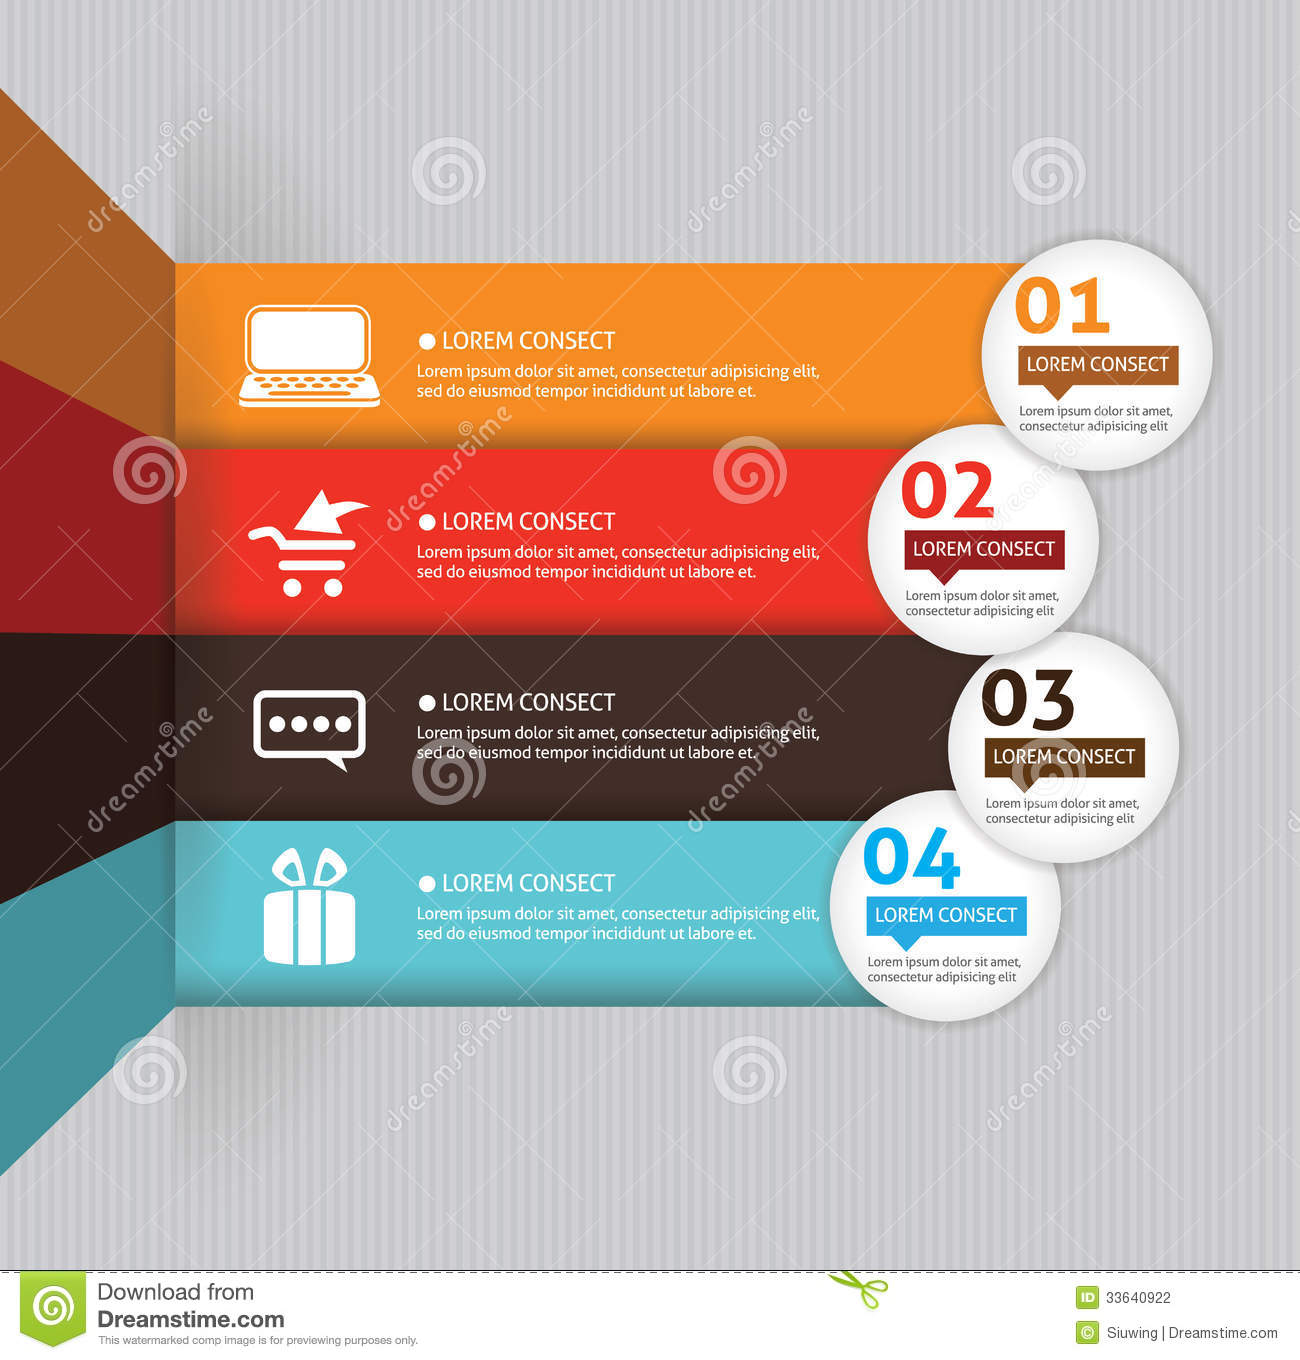 Presentation design templates wajeb Images